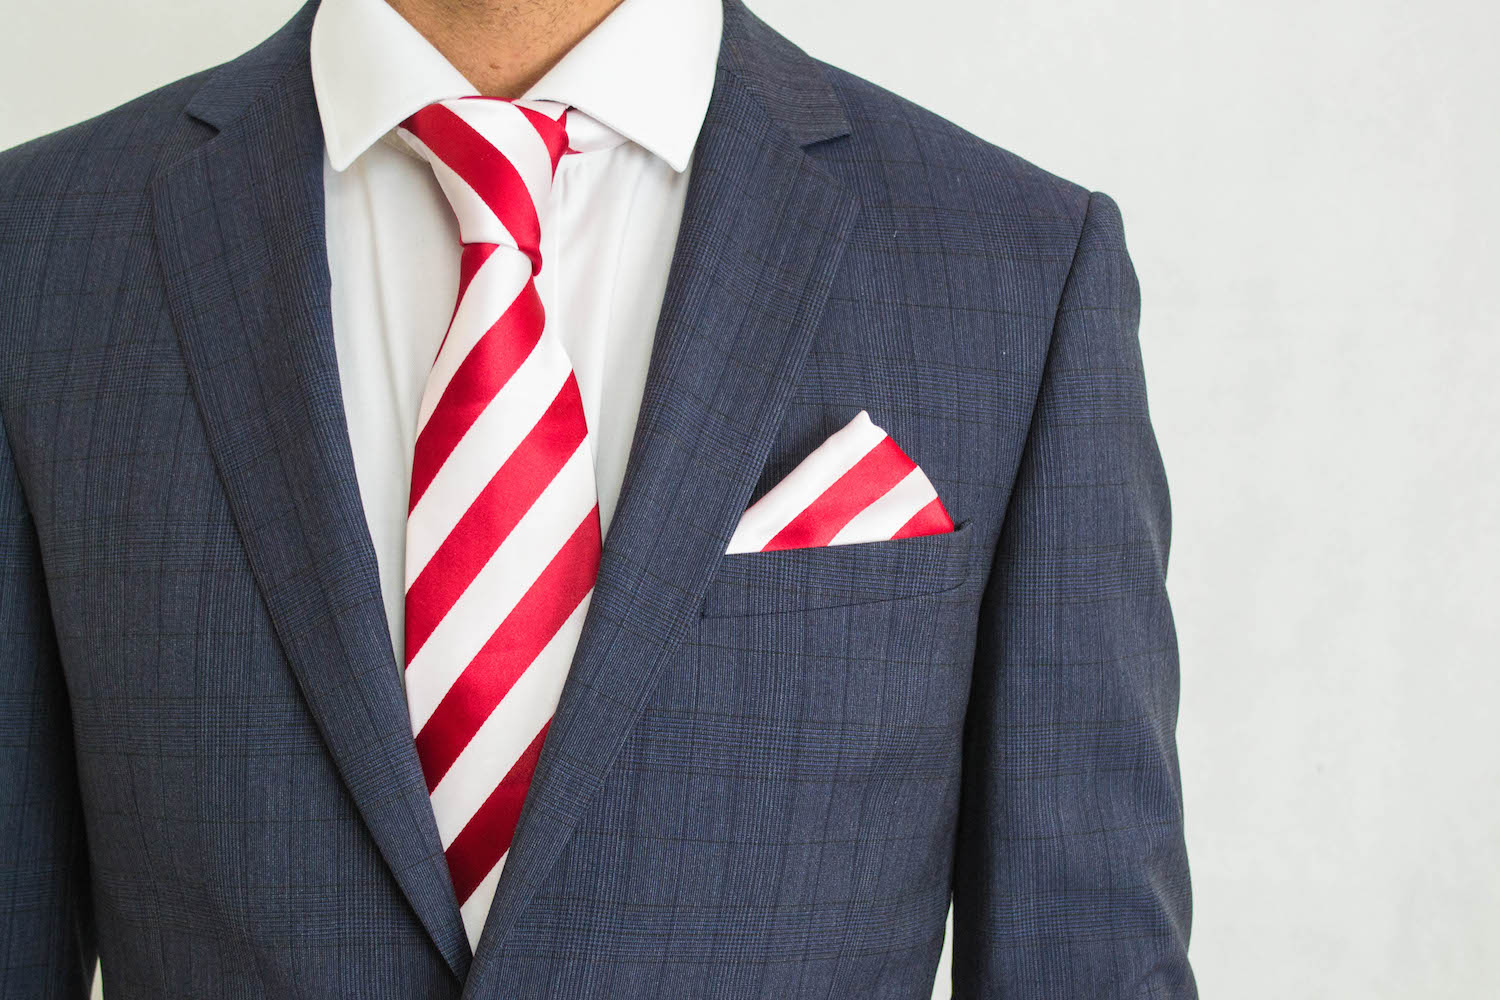 Matching-Tie_PS-colors.jpeg